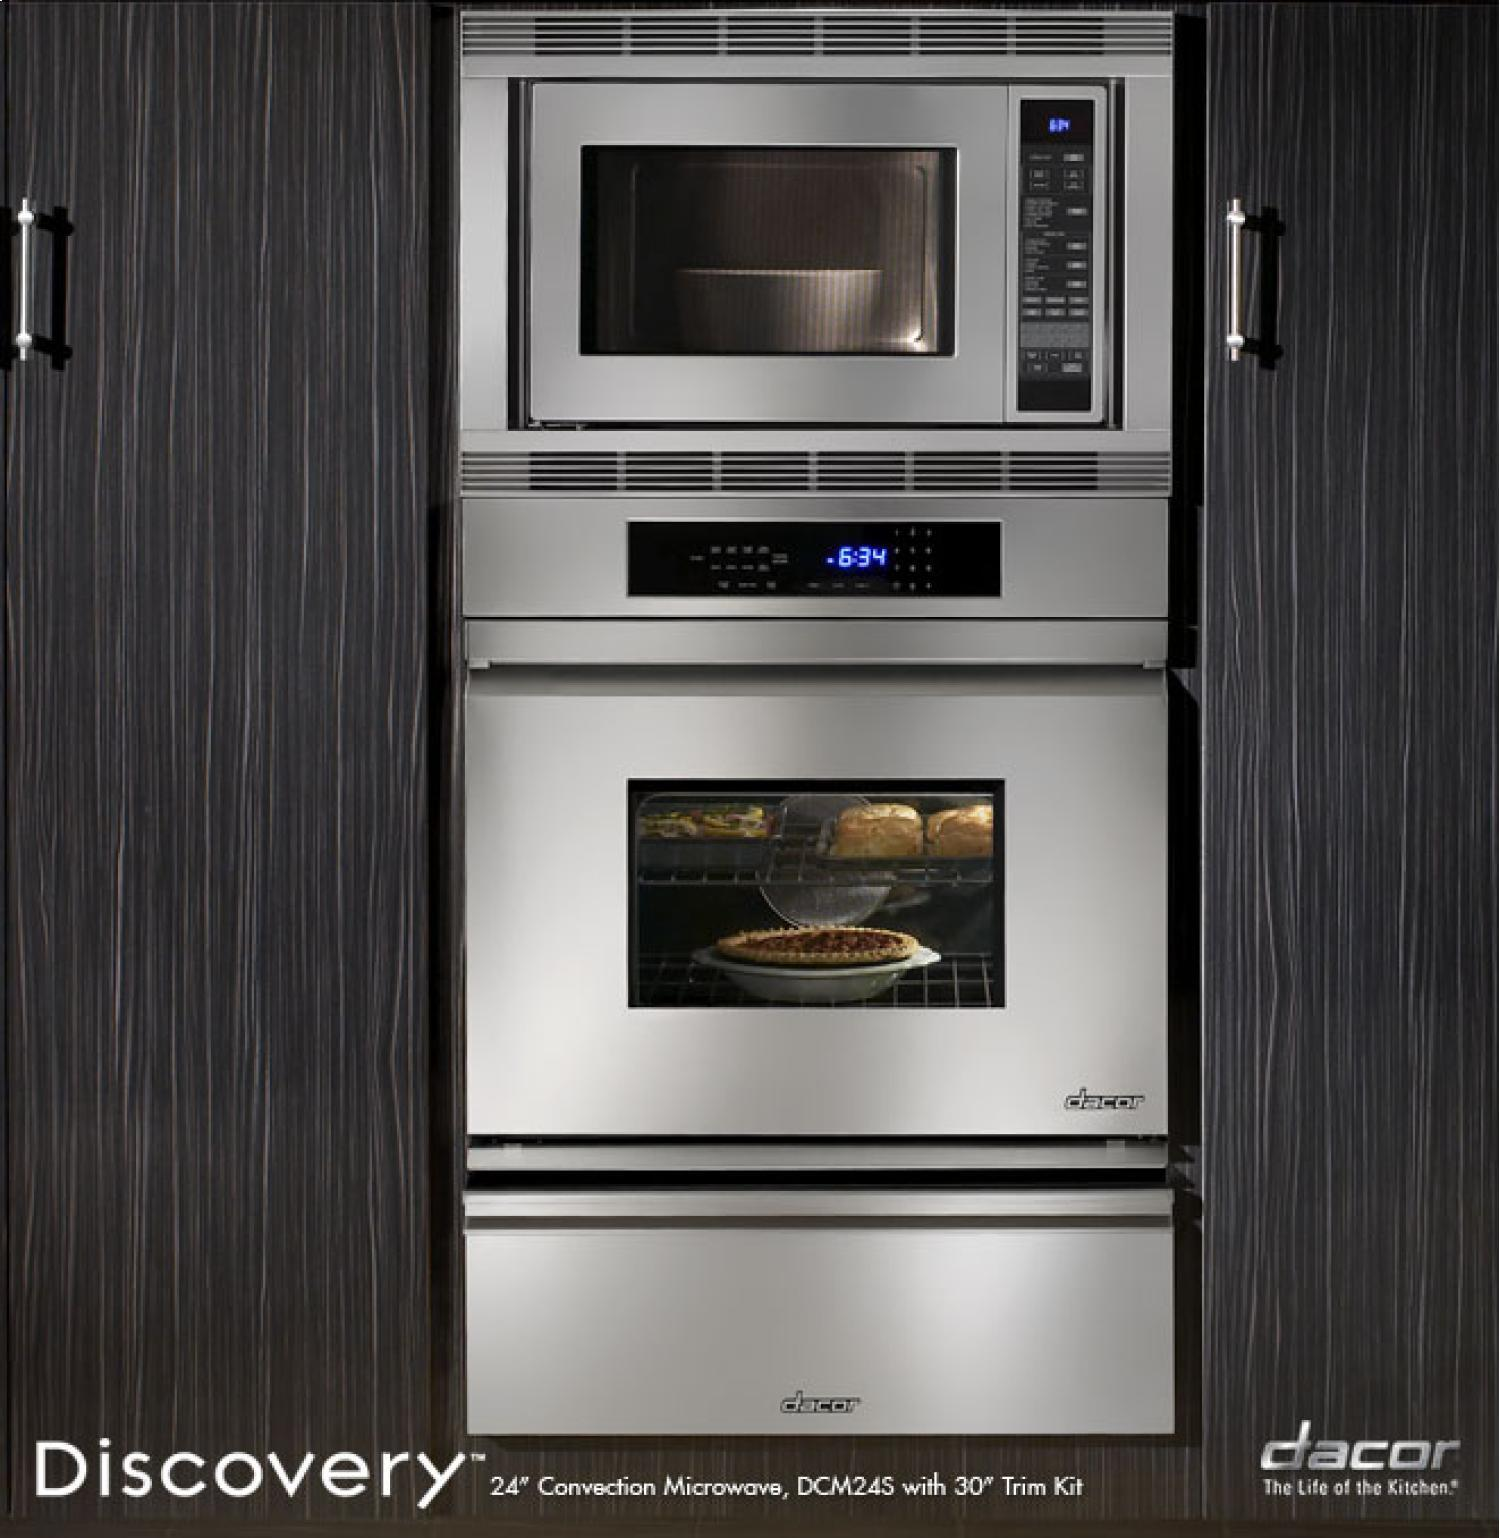 Dcm24 dacor dcm24 discovery countertop microwaves for Decor microwave